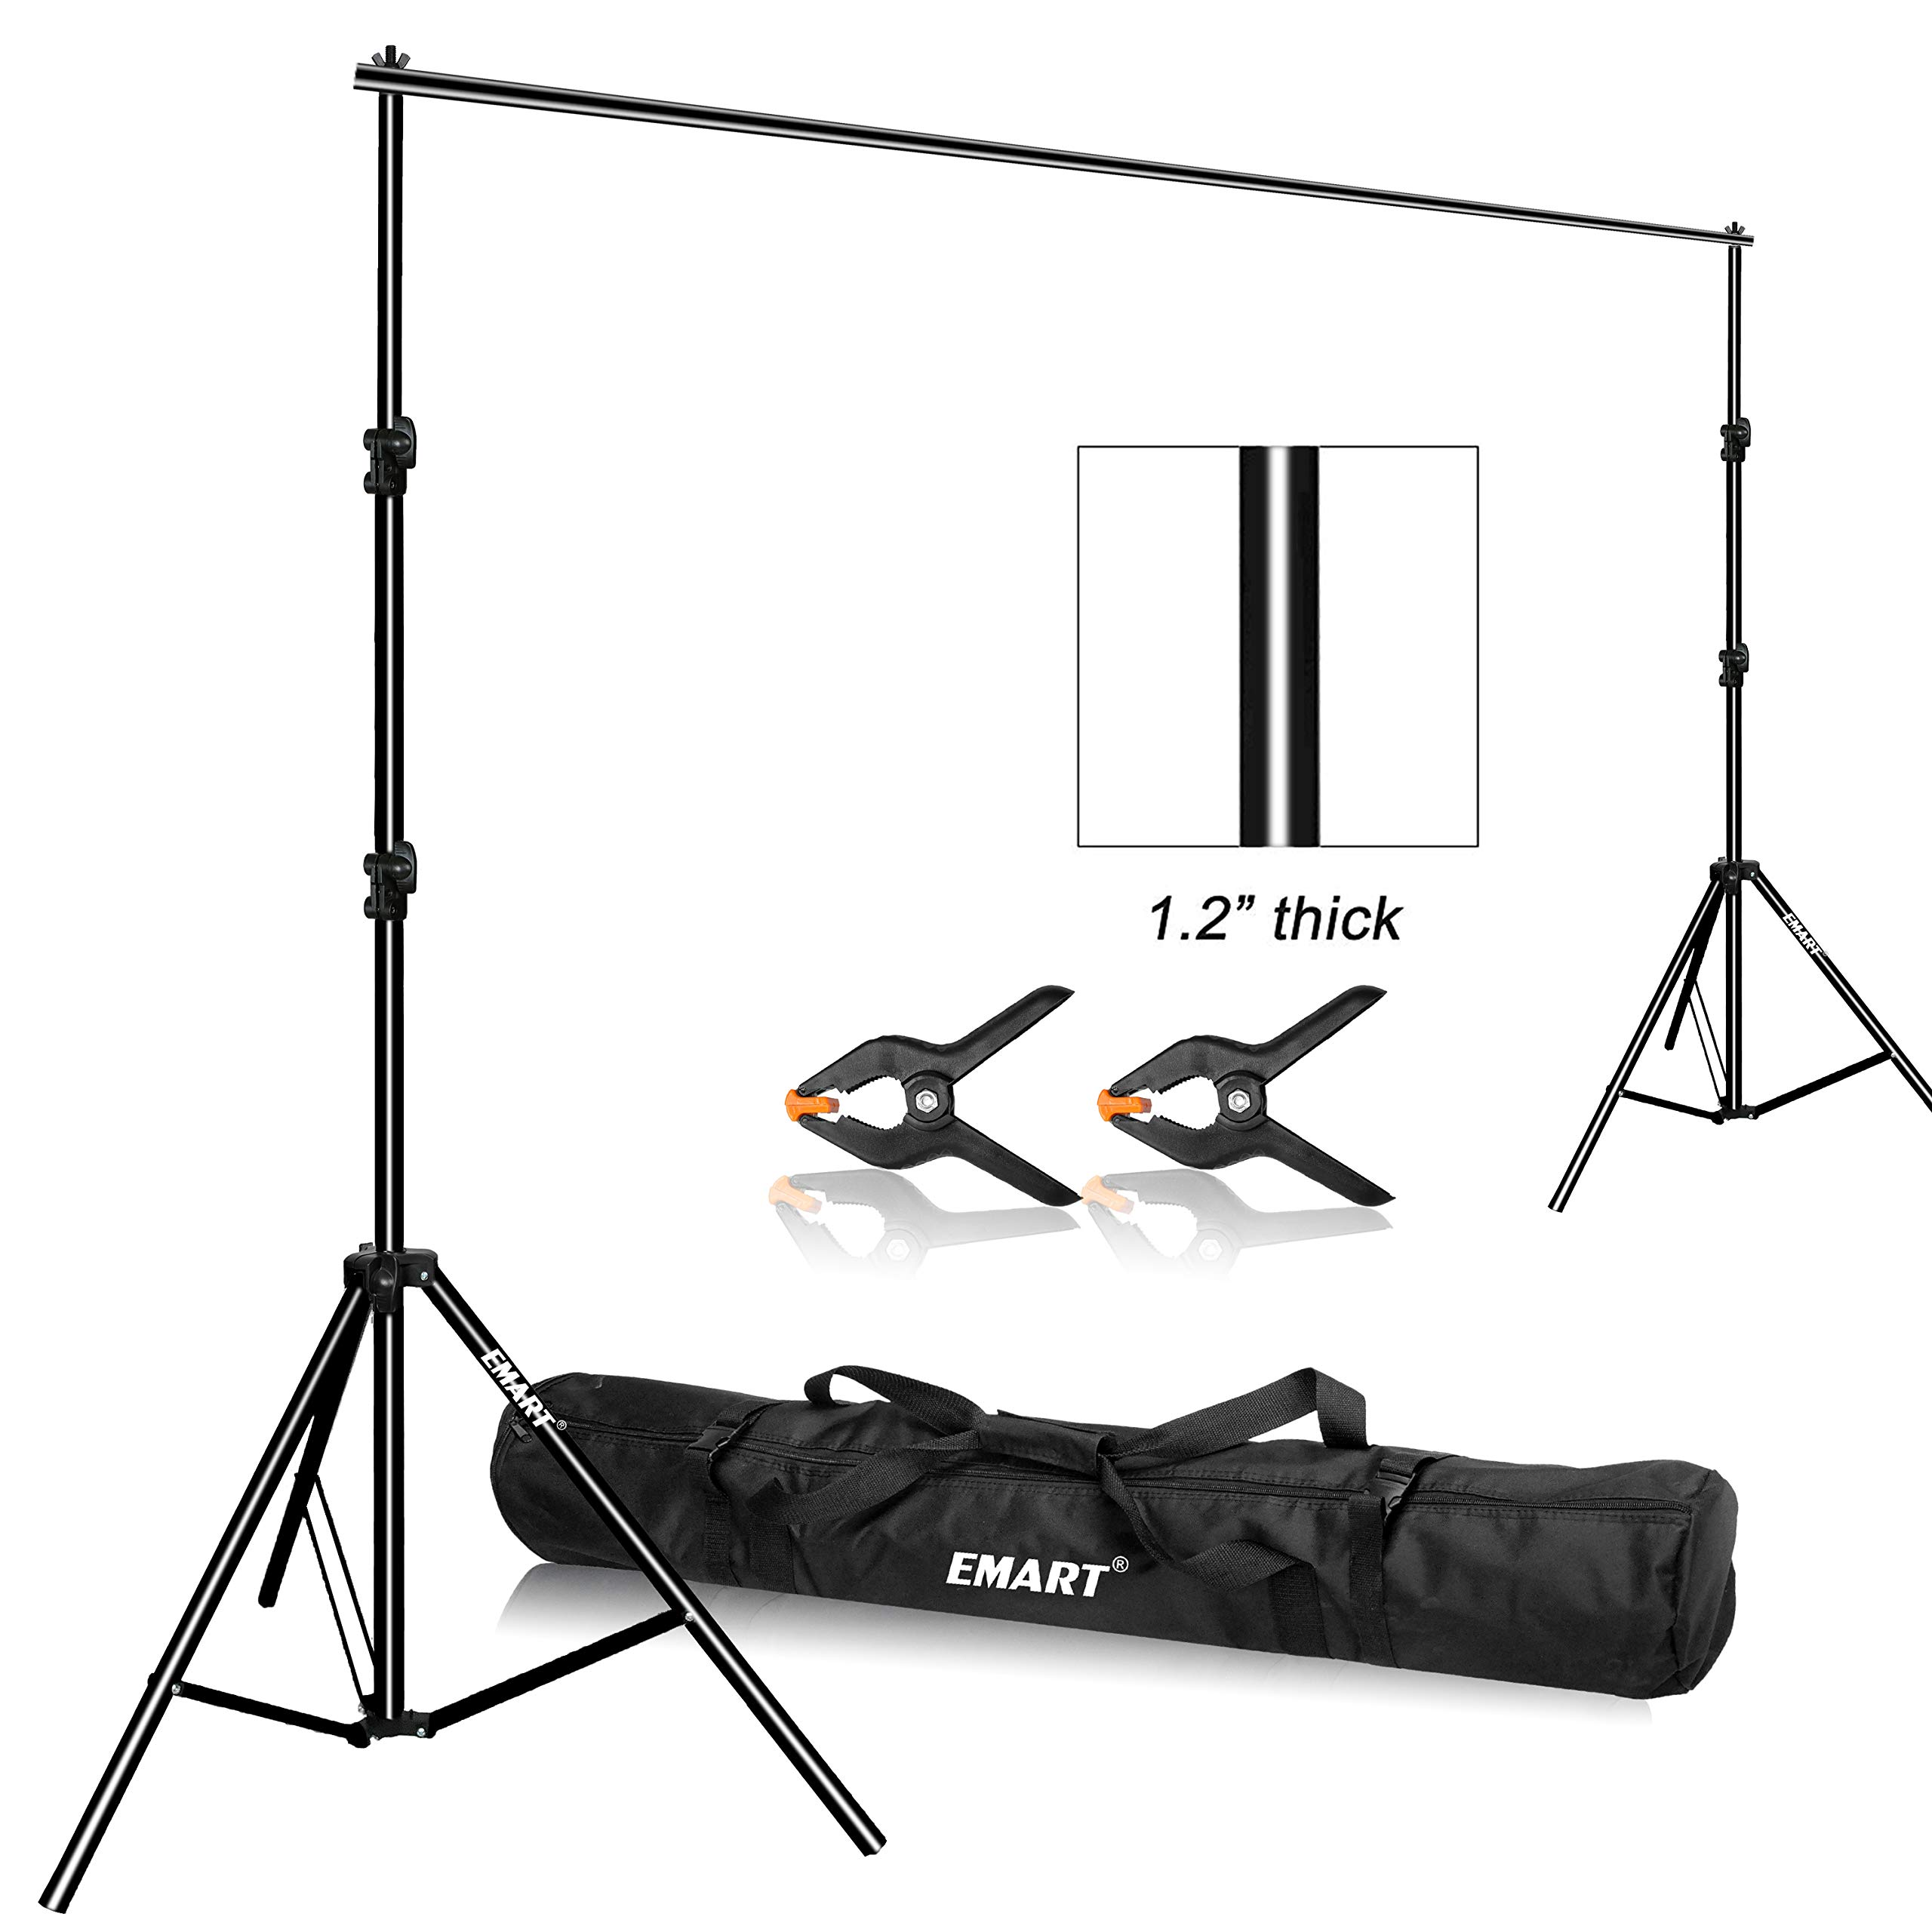 Emart Photo Video Studio 9.2 x 10ft Heavy Duty Background Stand Backdrop Support System Kit with Carry Bag for Photography by EMART